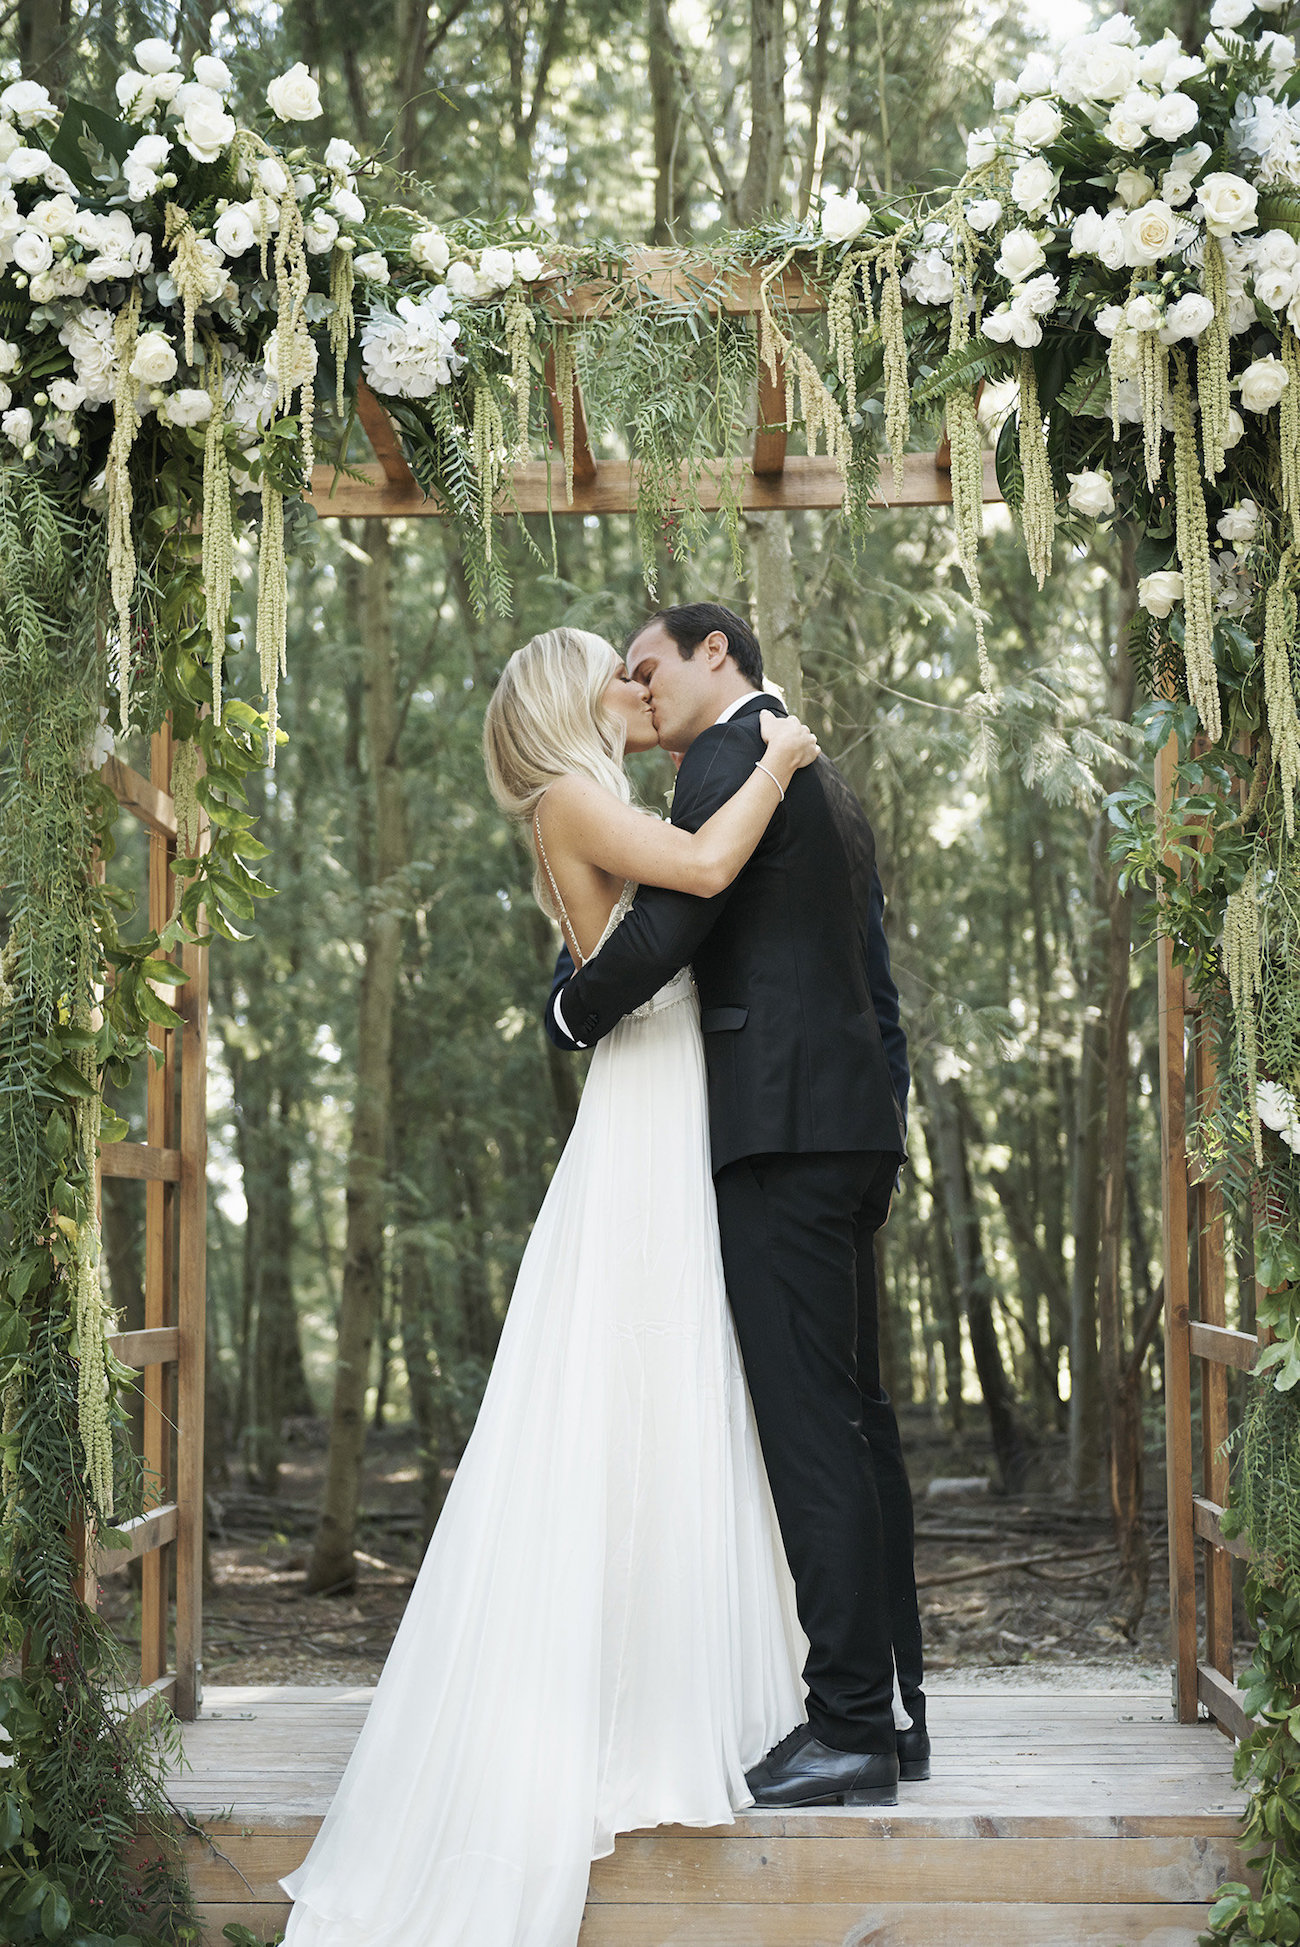 Forest Wedding Ceremony Floral Arch | Image: Knit Together Photography